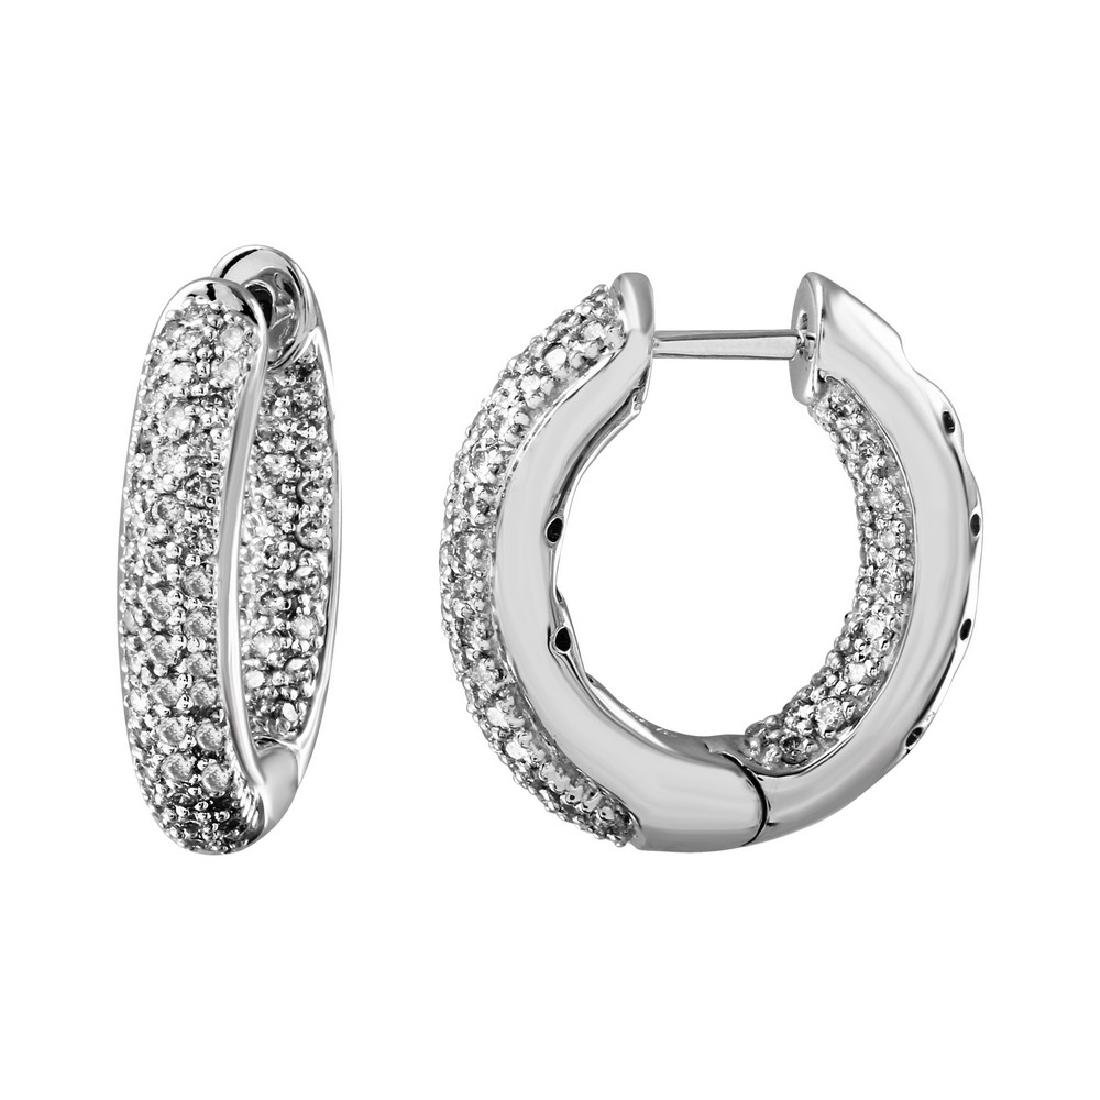 Genuine 0.82 TCW 14K White Gold Ladies Earring